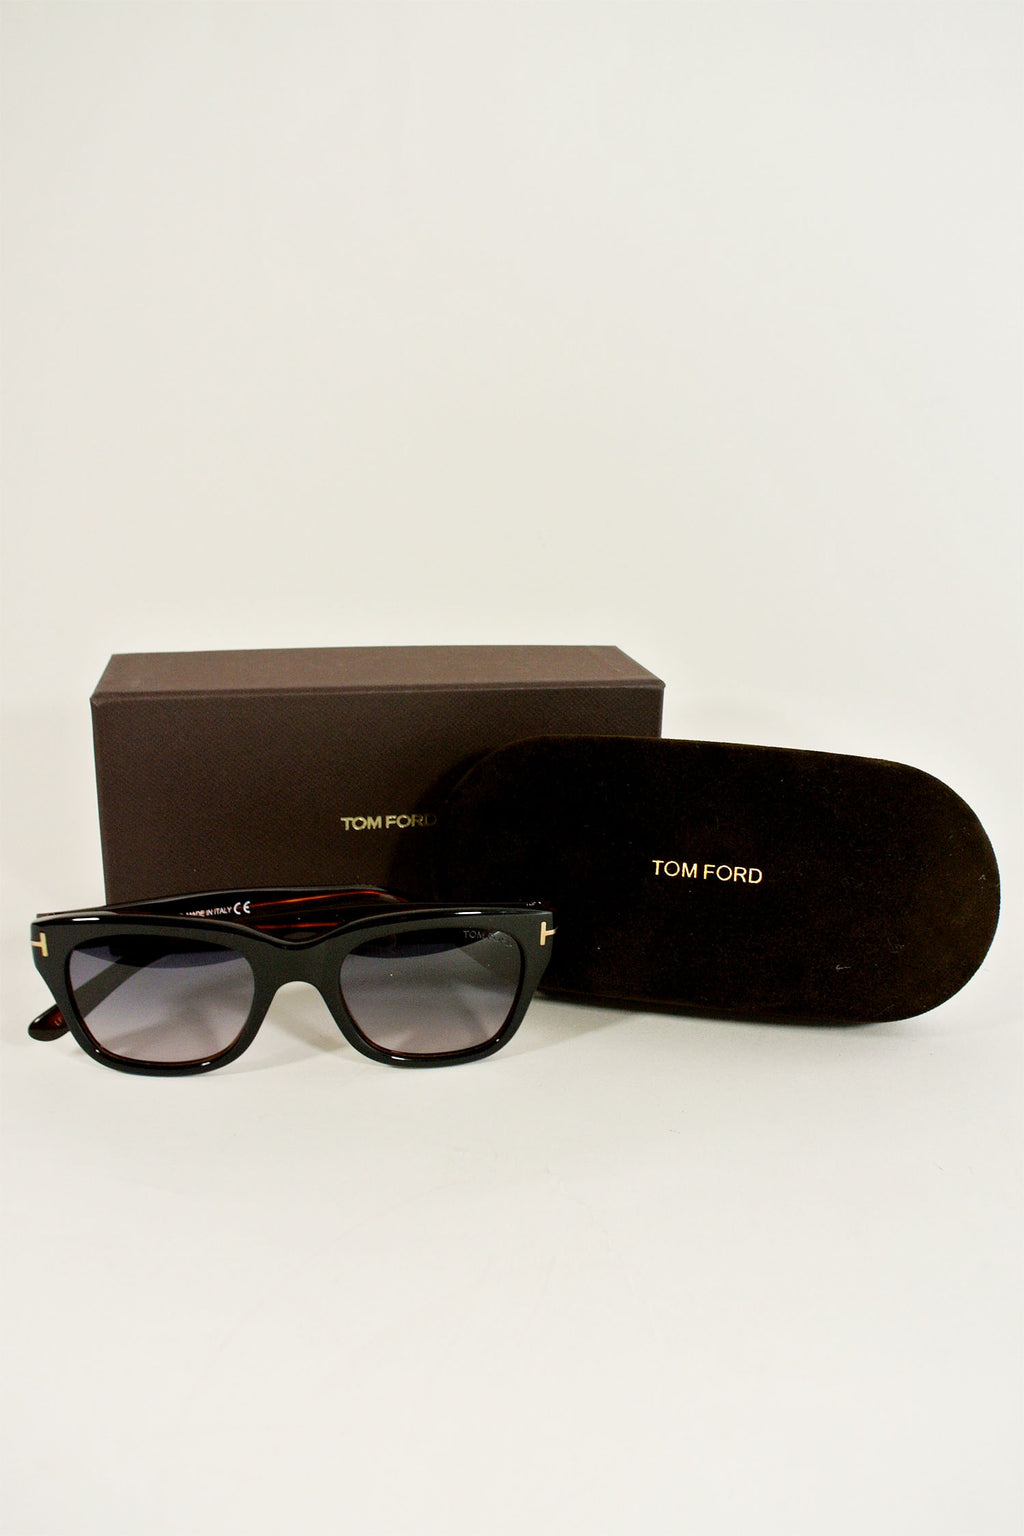 Tom Ford Brow Sunglasses